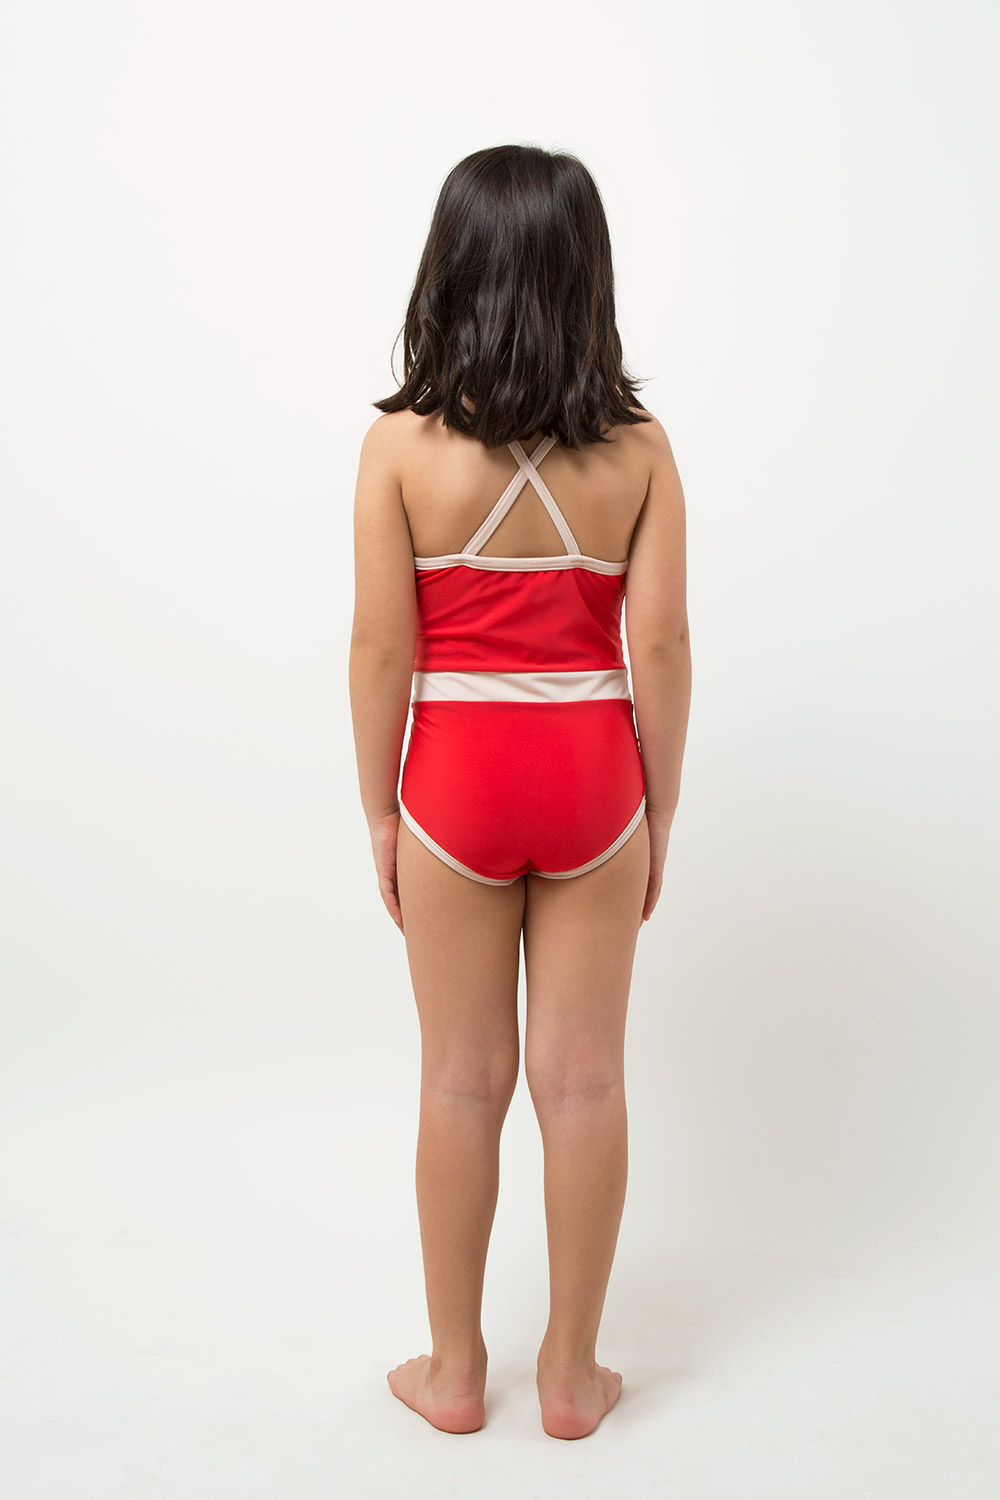 swimwear retrored one piece - product red - girl - back